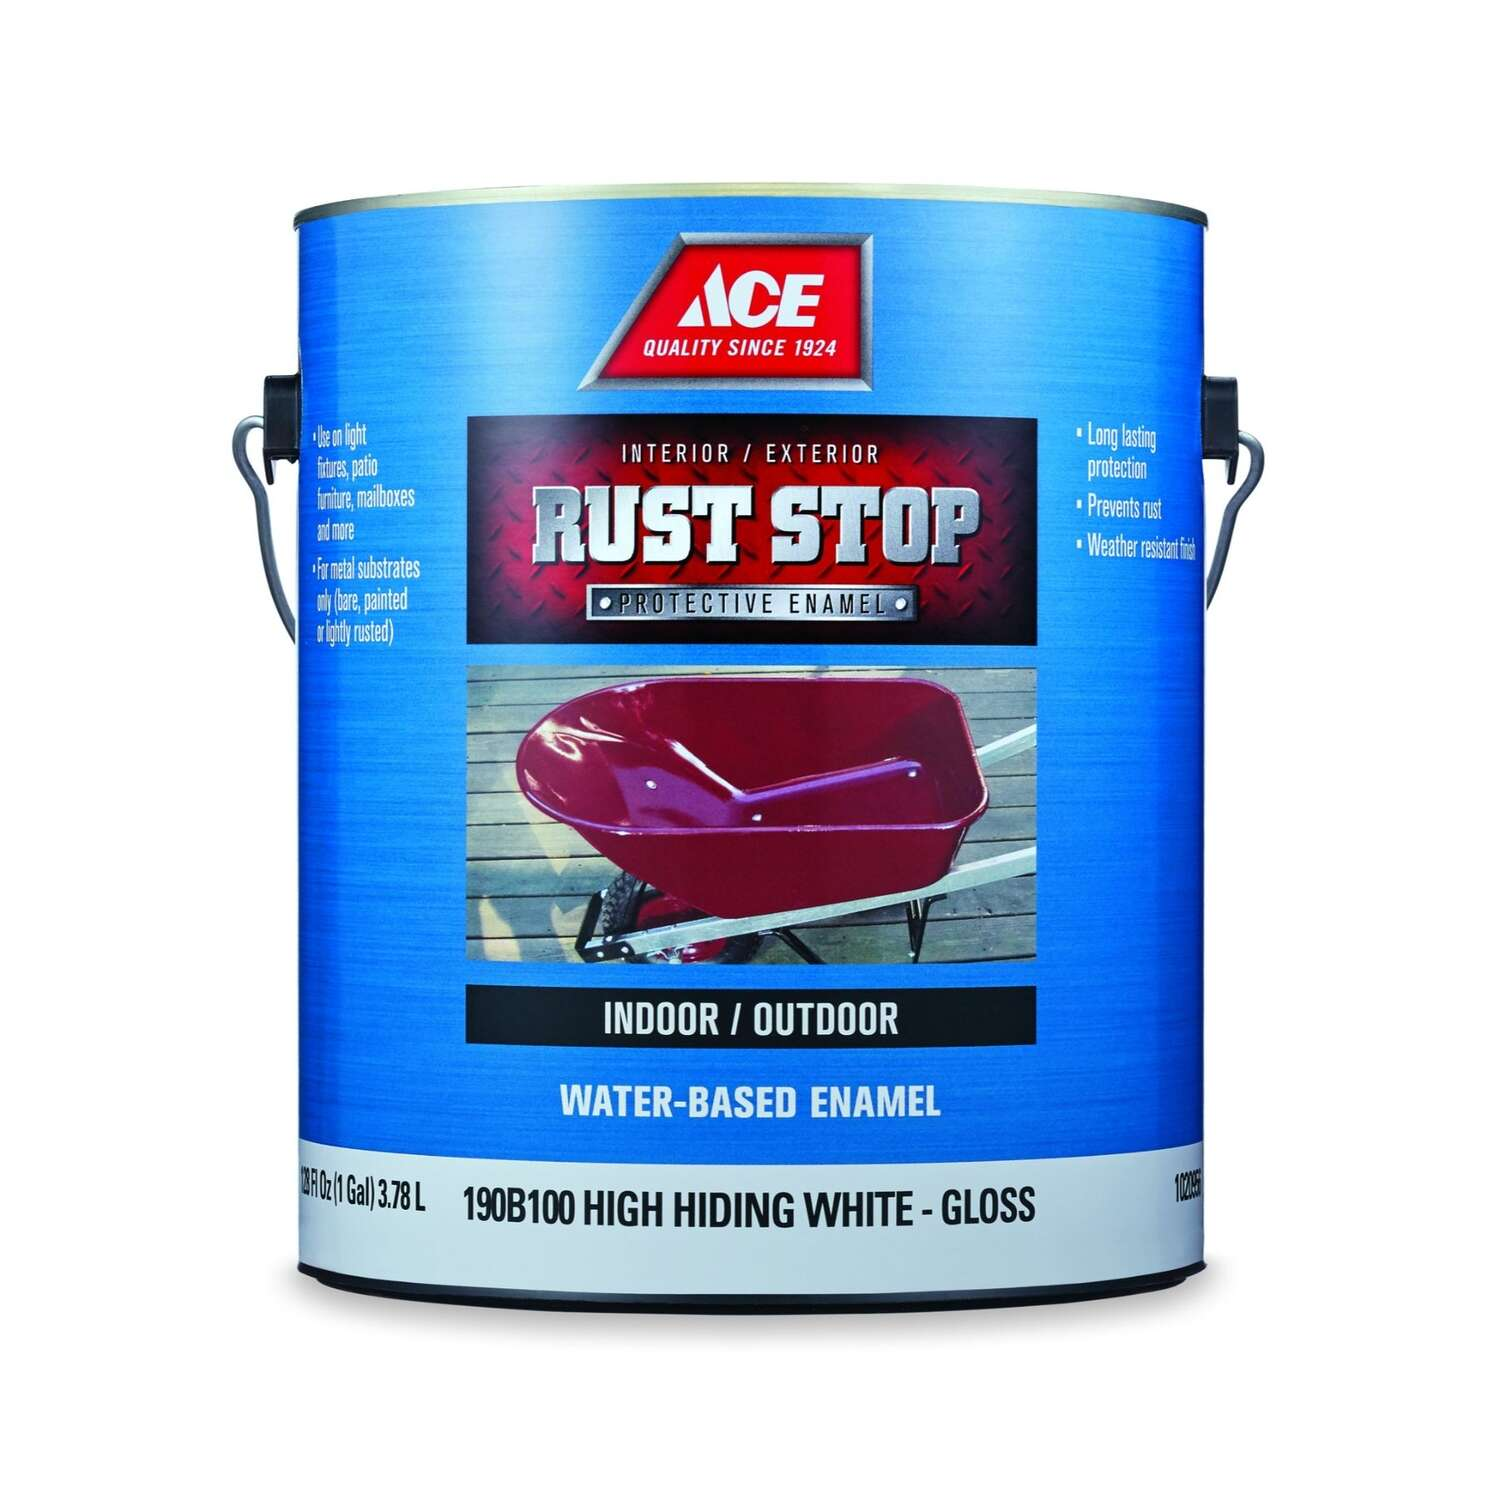 Ace  Rust Stop  Indoor / Outdoor  Gloss  High-Hiding White  Water-Based Enamel  Rust Preventative Pa